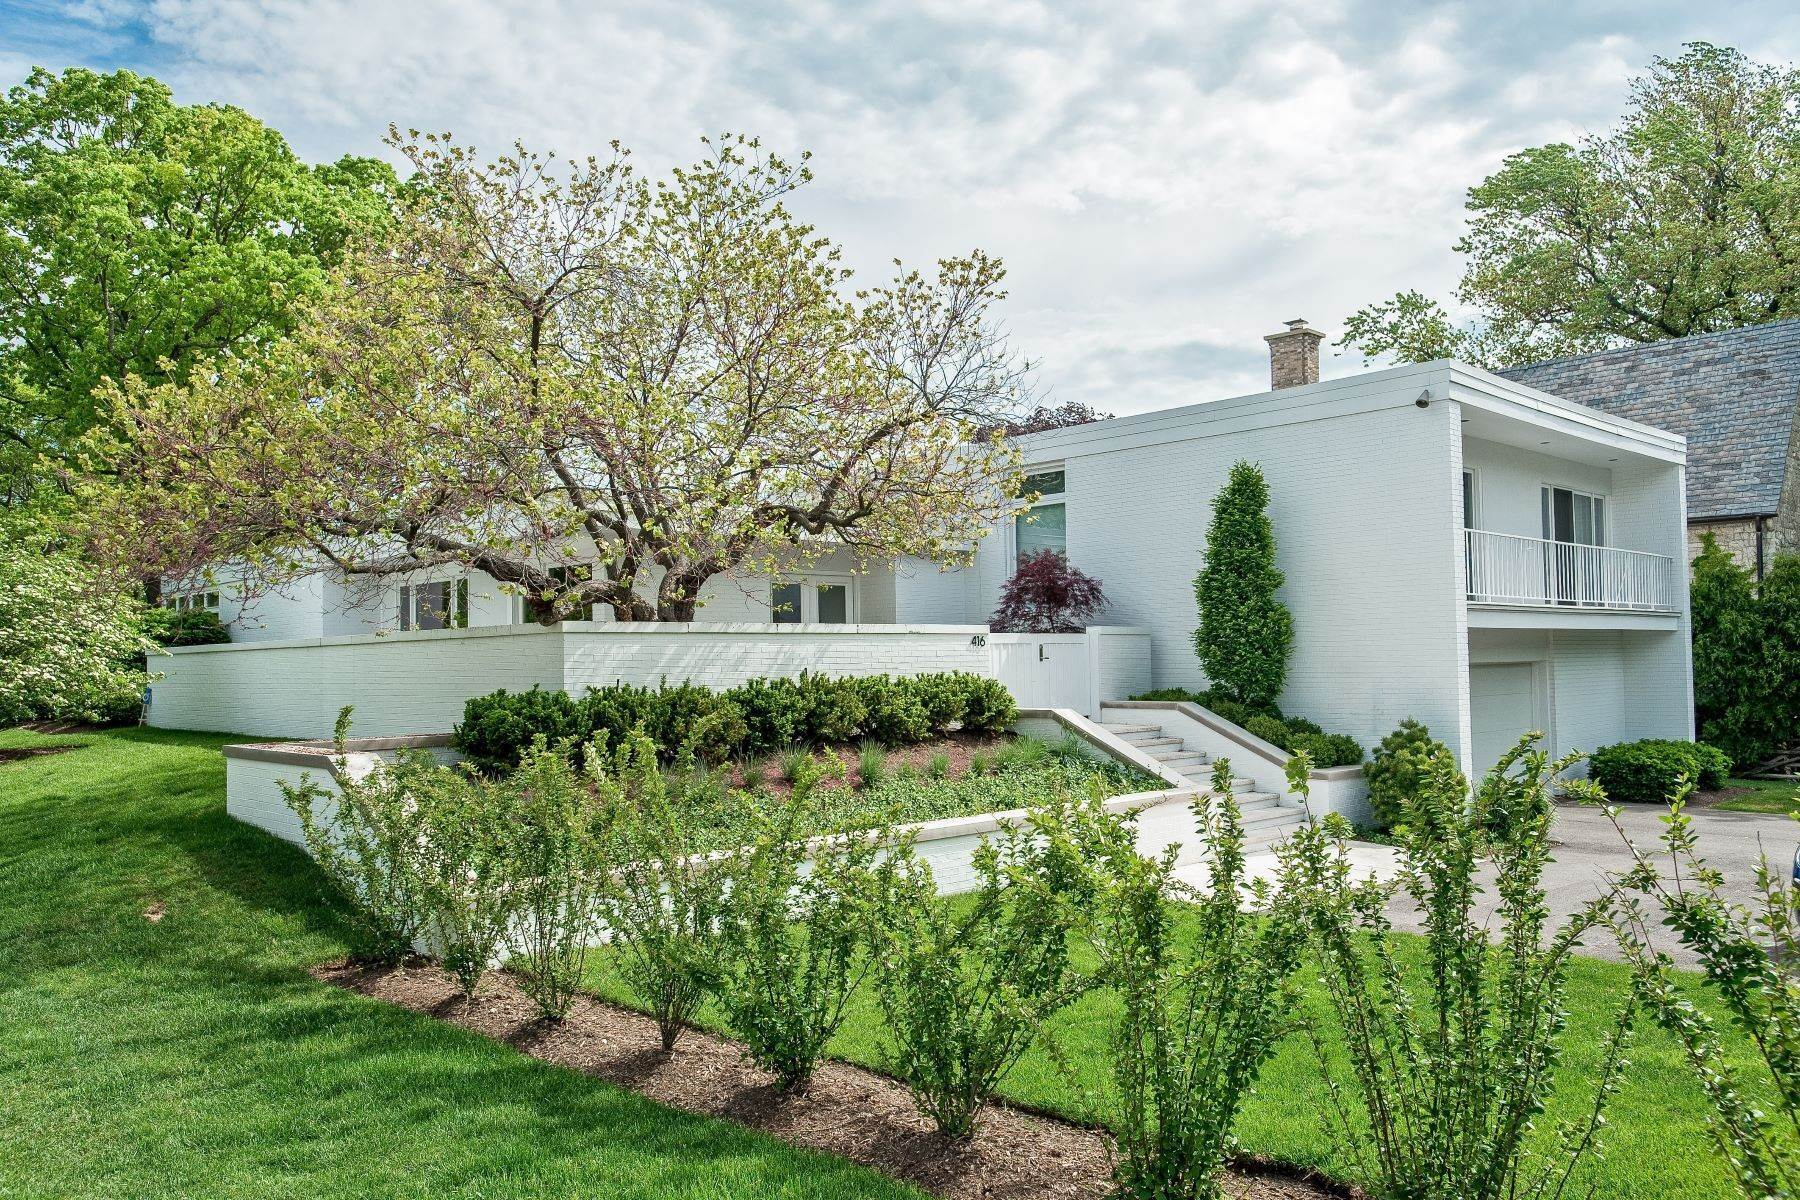 Single Family Homes for Sale at Mid Century Modern 416 Sheridan Road Wilmette, Illinois 60091 United States